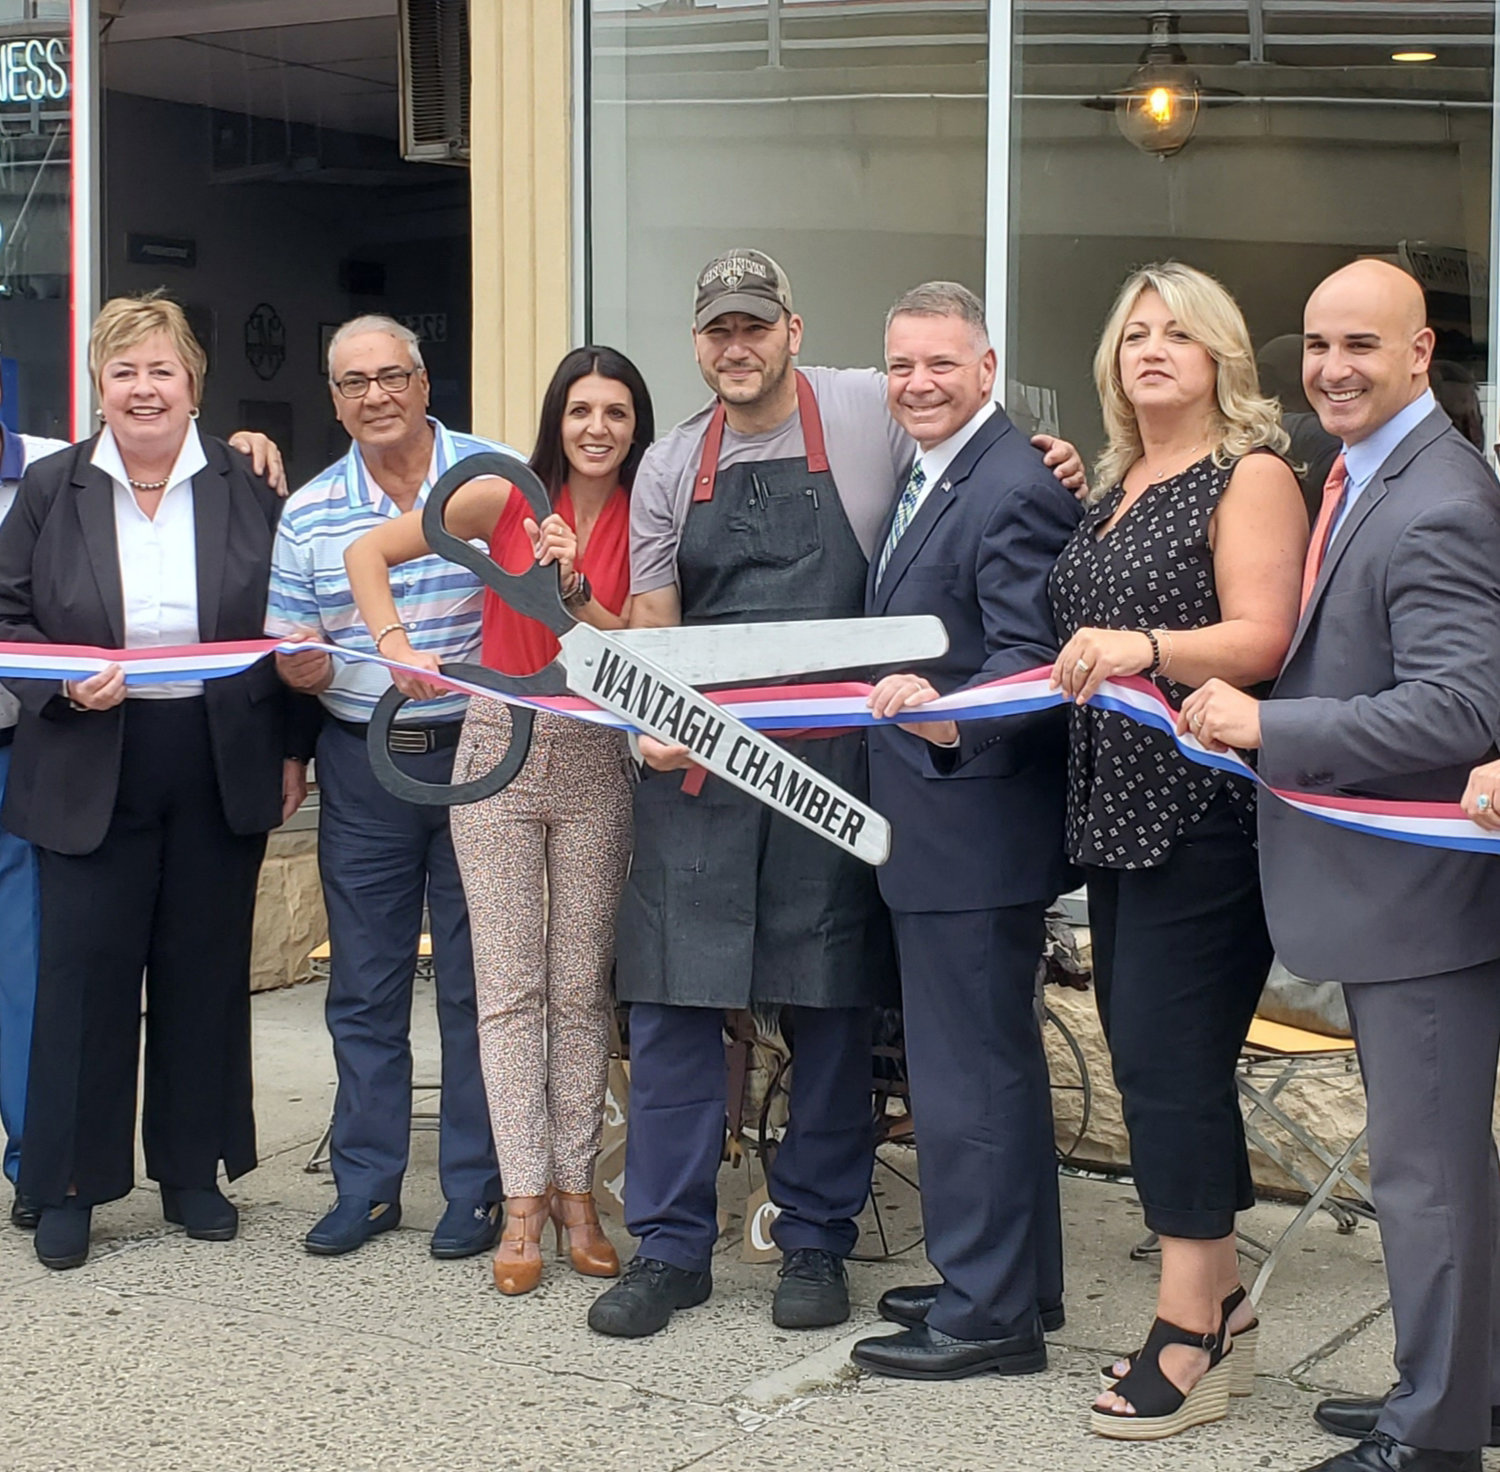 Little Kitchen owners Carlo Stanisci and Lina DeFalco were joined by Assistant Town Clerk Kate Murray and State Legislator Steve Rhoads during the Wantagh Chamber of Commerce ribbon cutting.